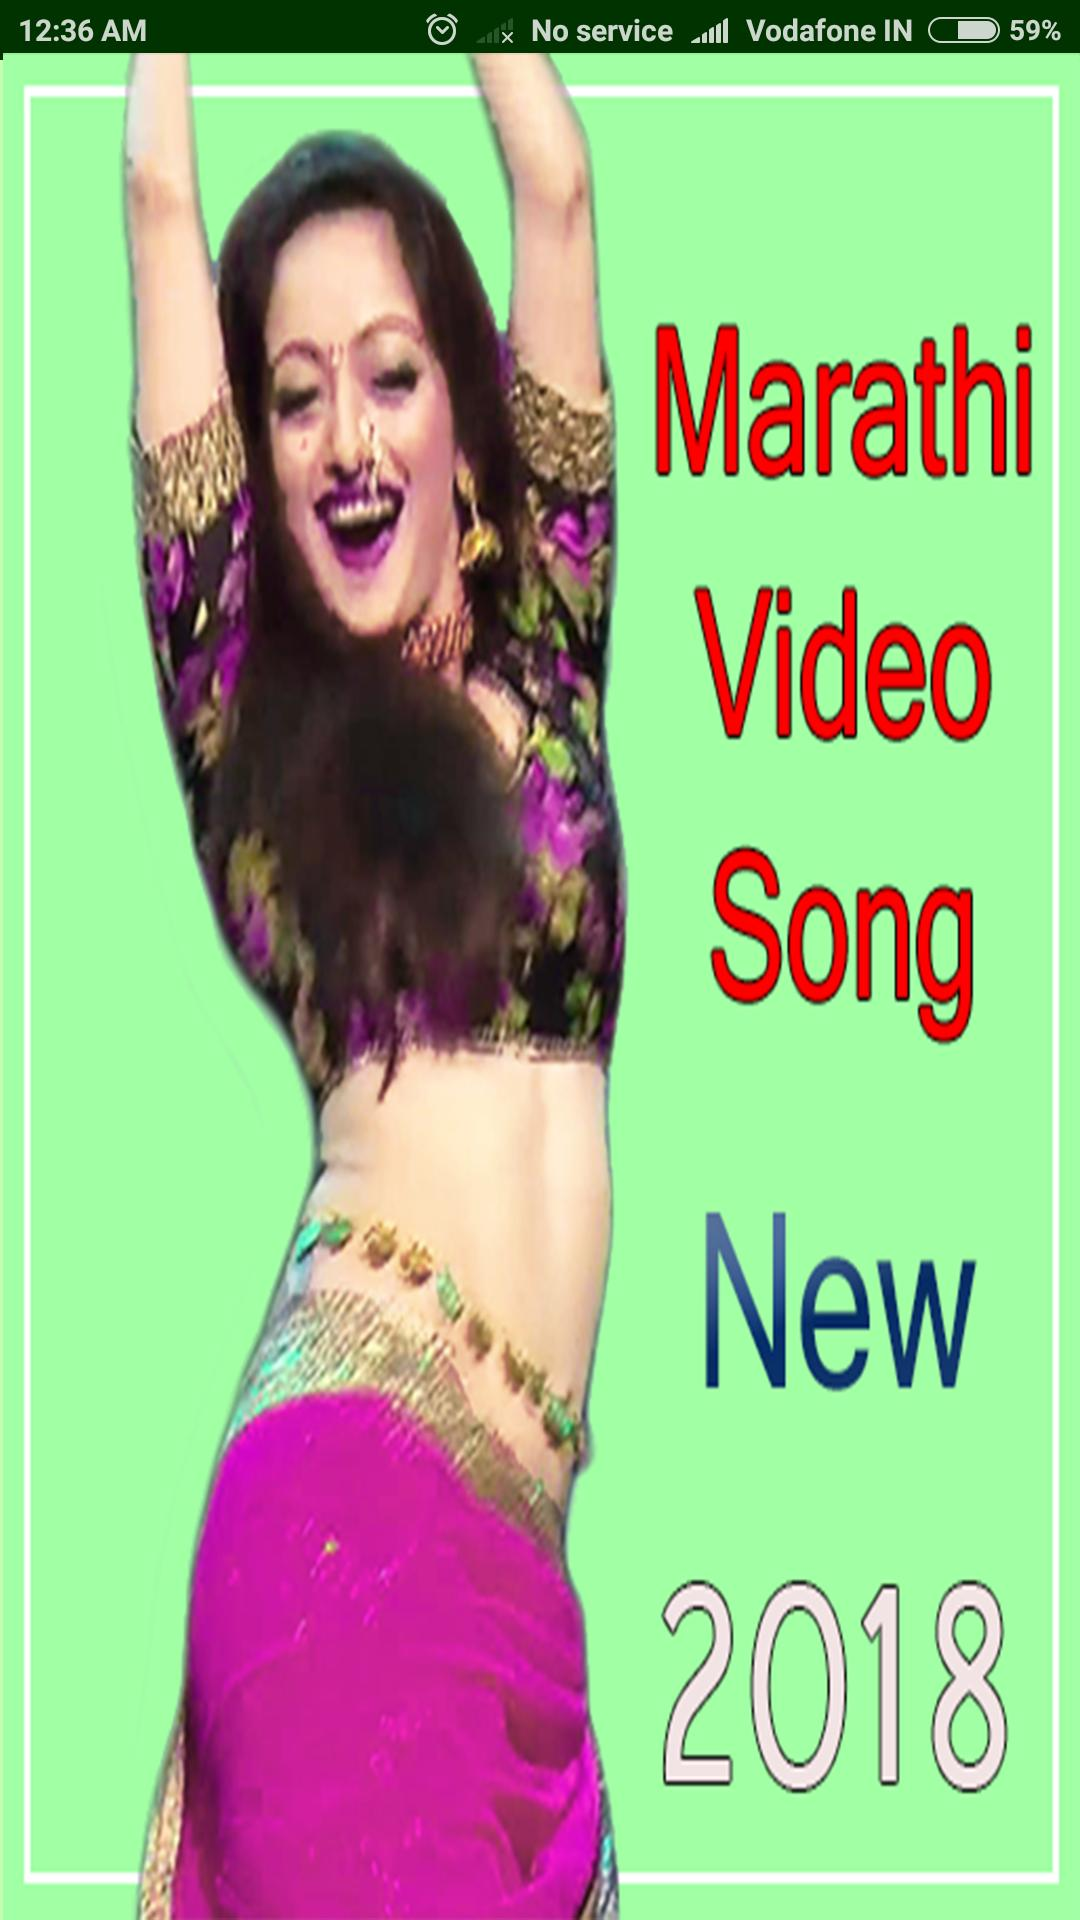 marathi video song new 2018 for Android - APK Download